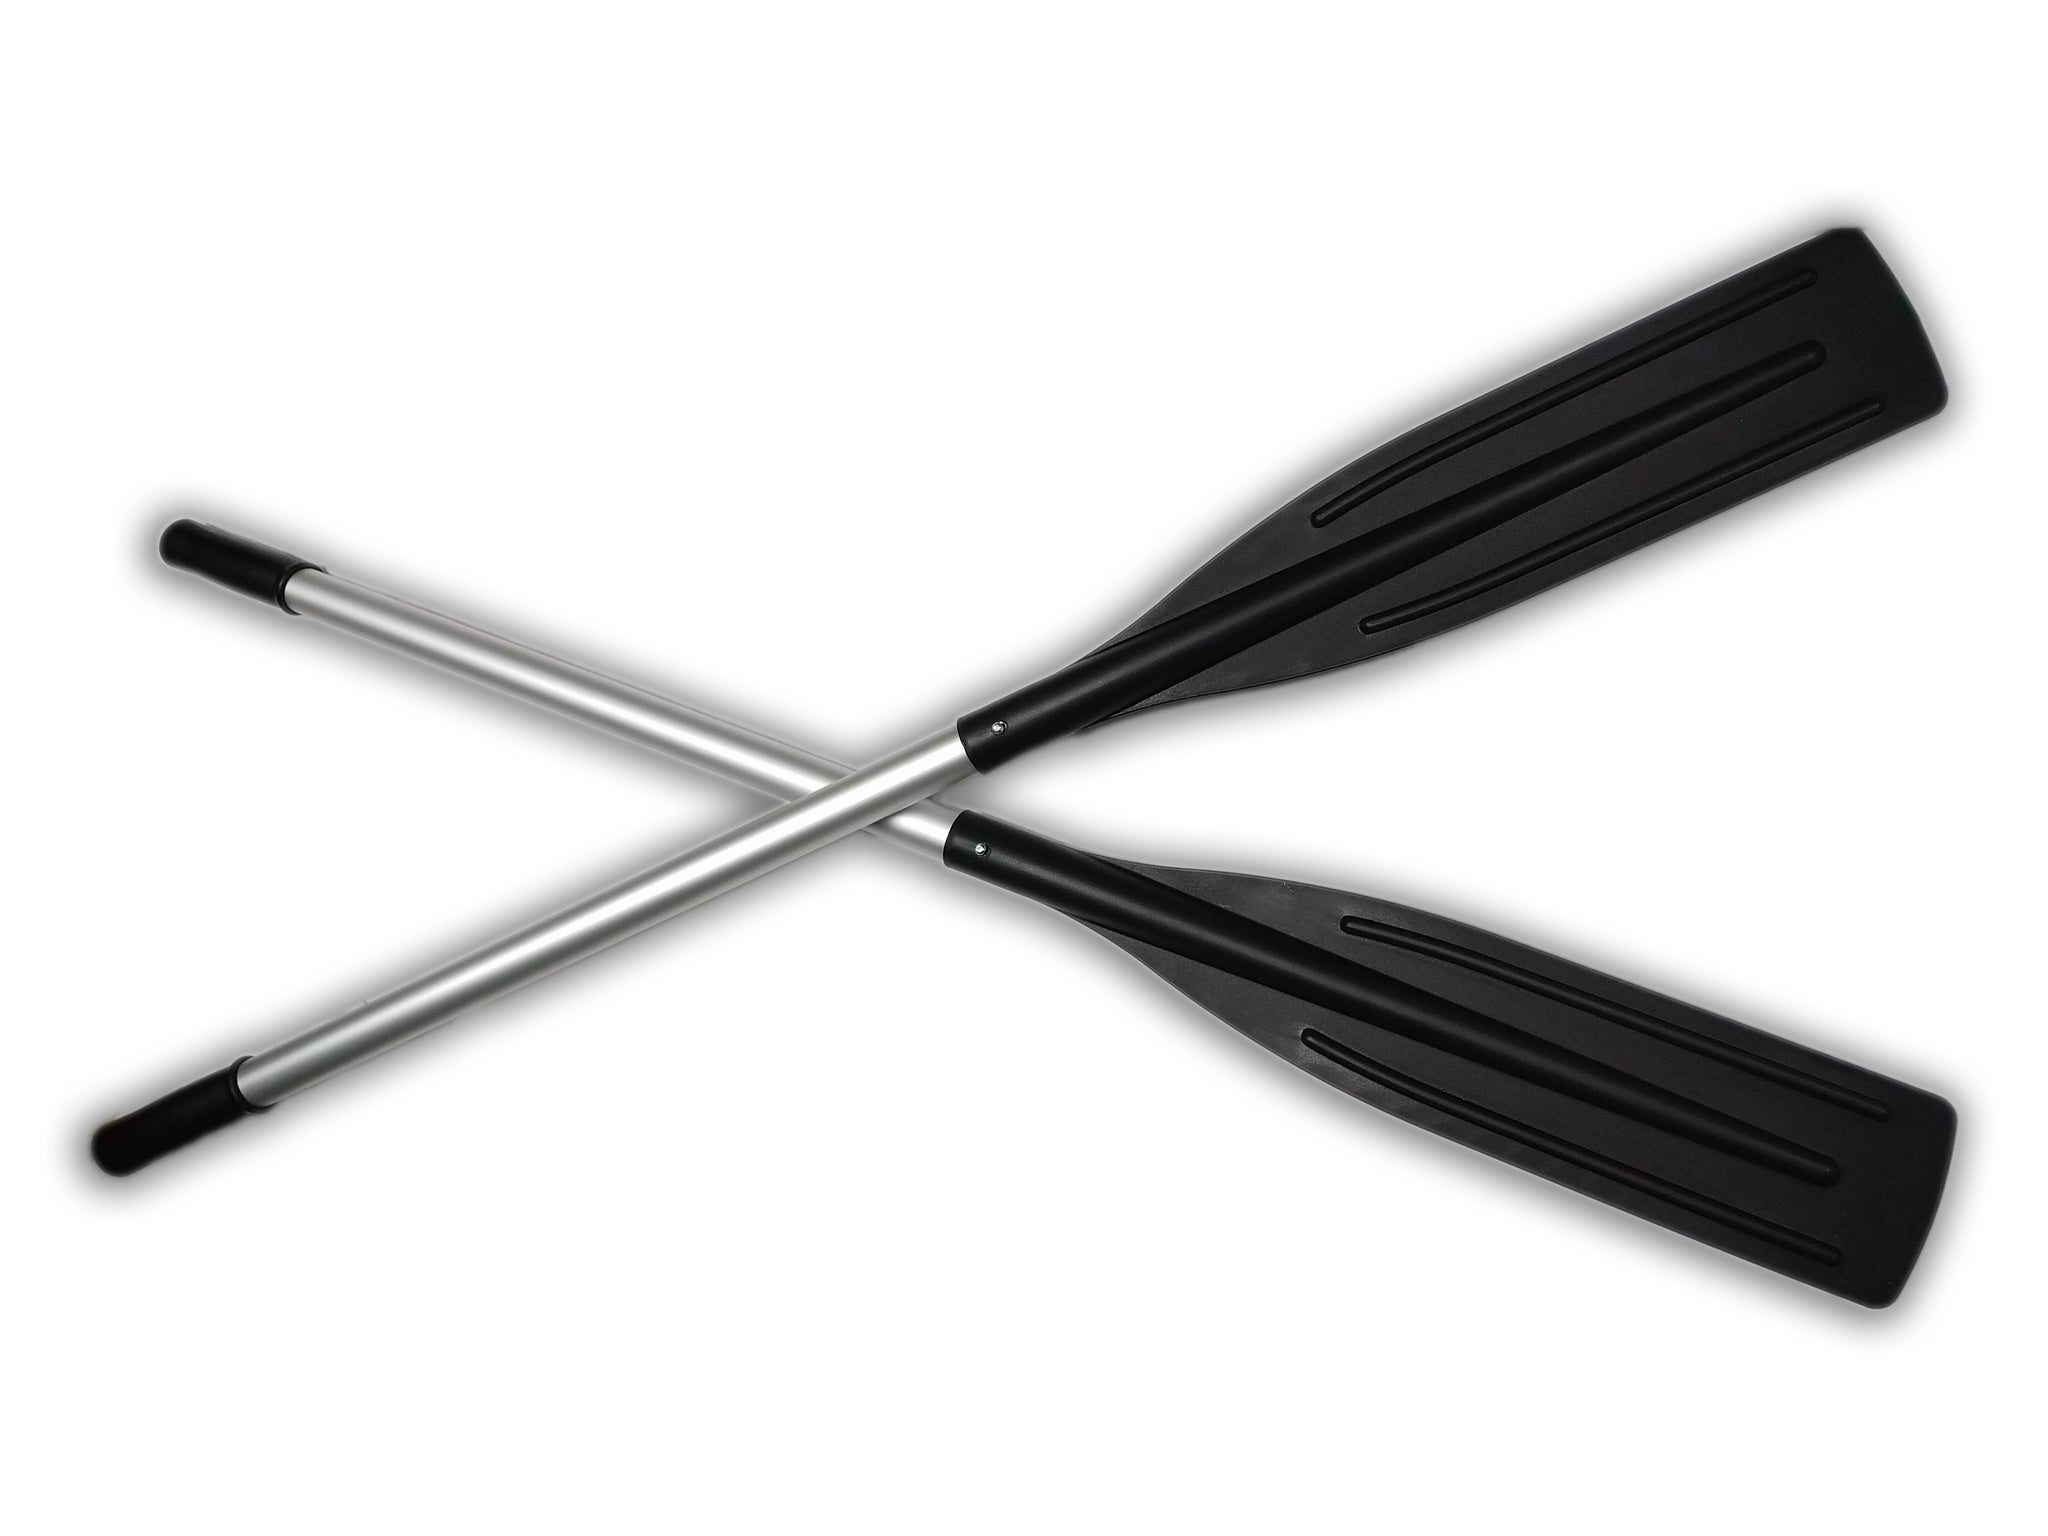 Zodiac Black Oars - 1.3m long by 35mm diameter Z6301